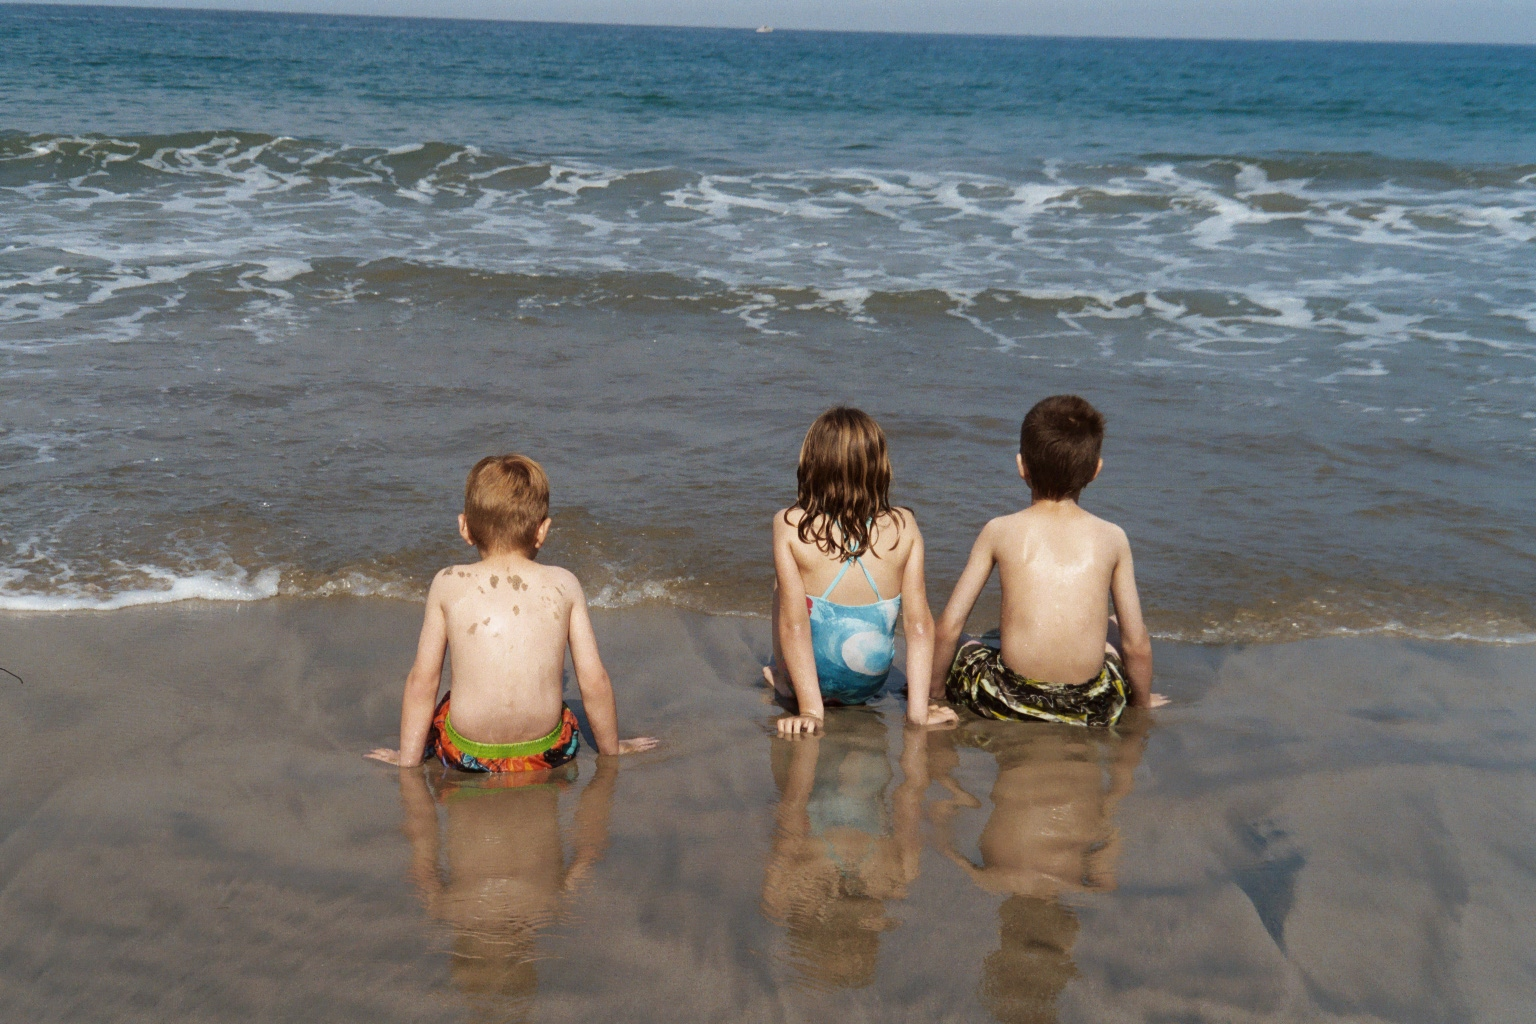 rancho palos verdes single parent dating site Discover the 624 best things to do with kids in rancho palos verdes, ca - including kid-friendly activities and family entertainment, ranked by 354,460 user reviews.